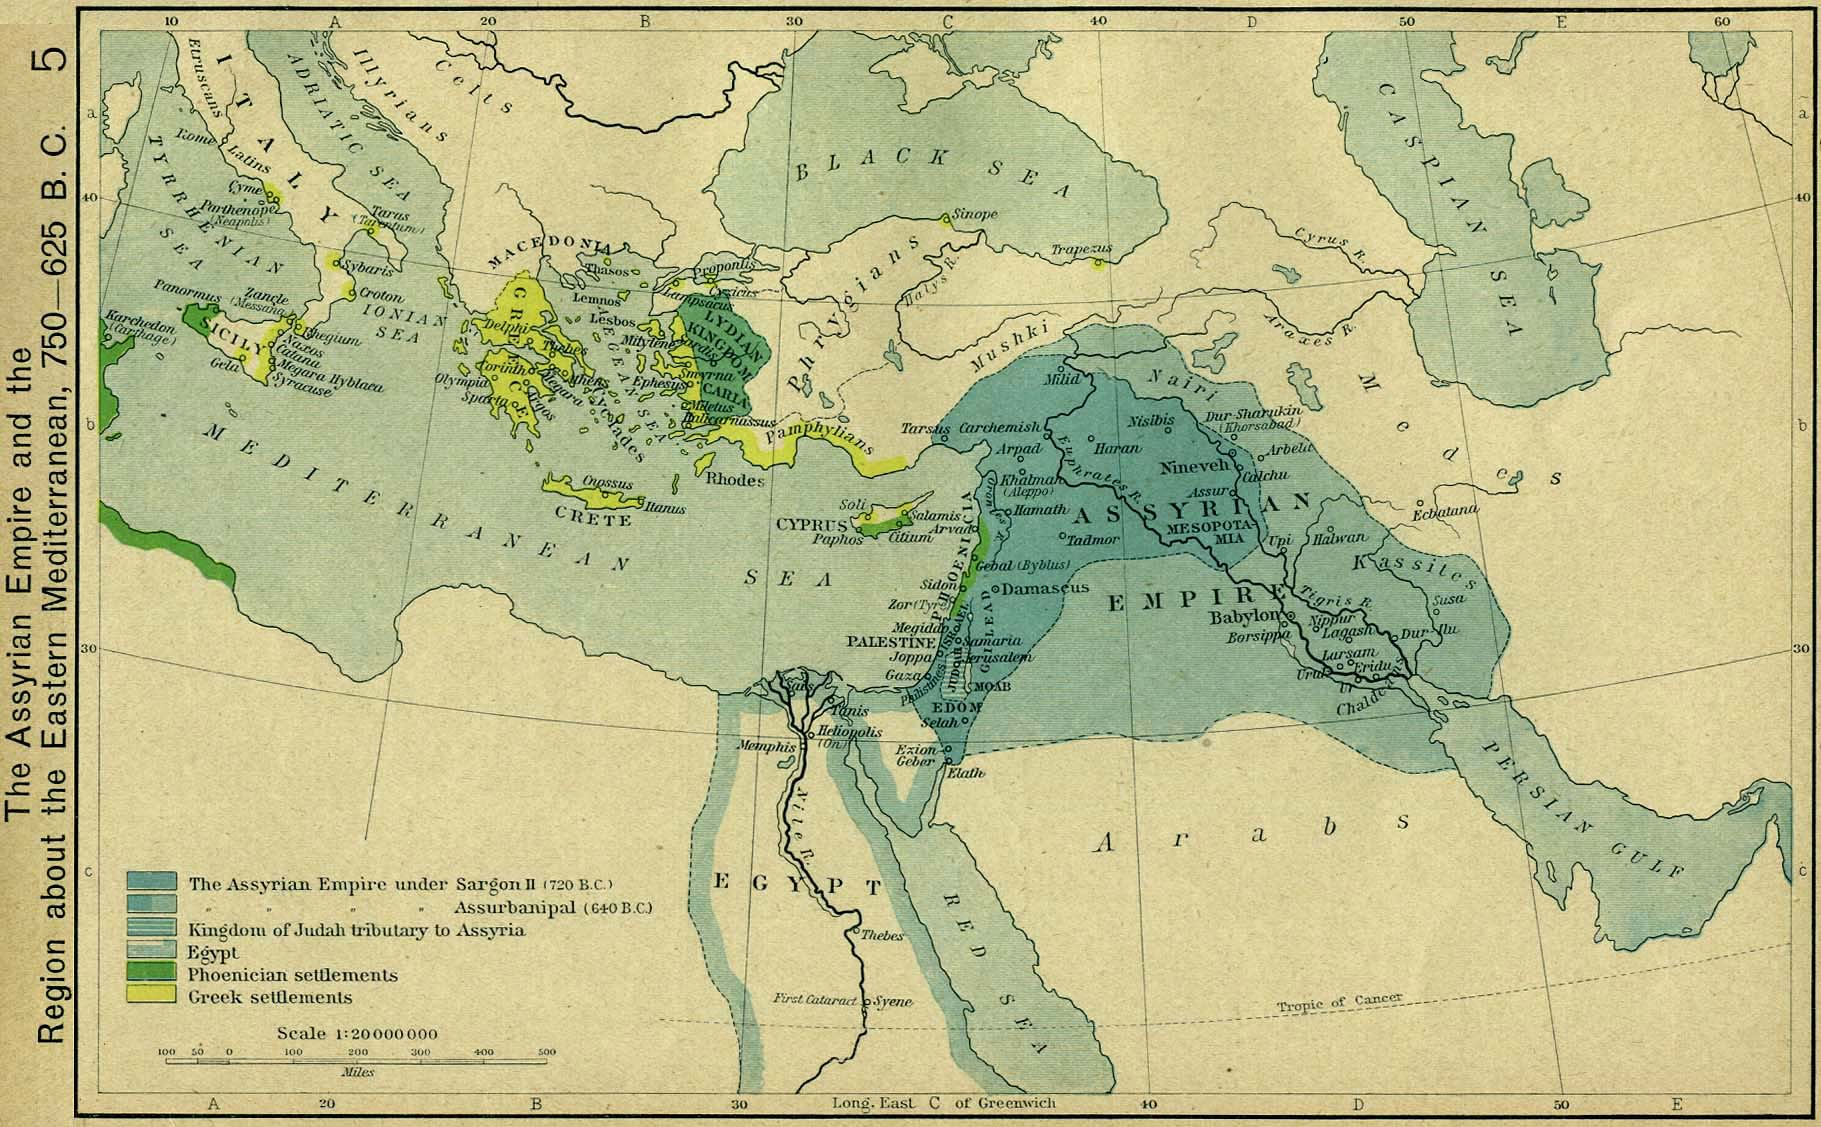 Map of the Assyrian Empire and the region about the Eastern Mediterranean, 750-625 B.C.